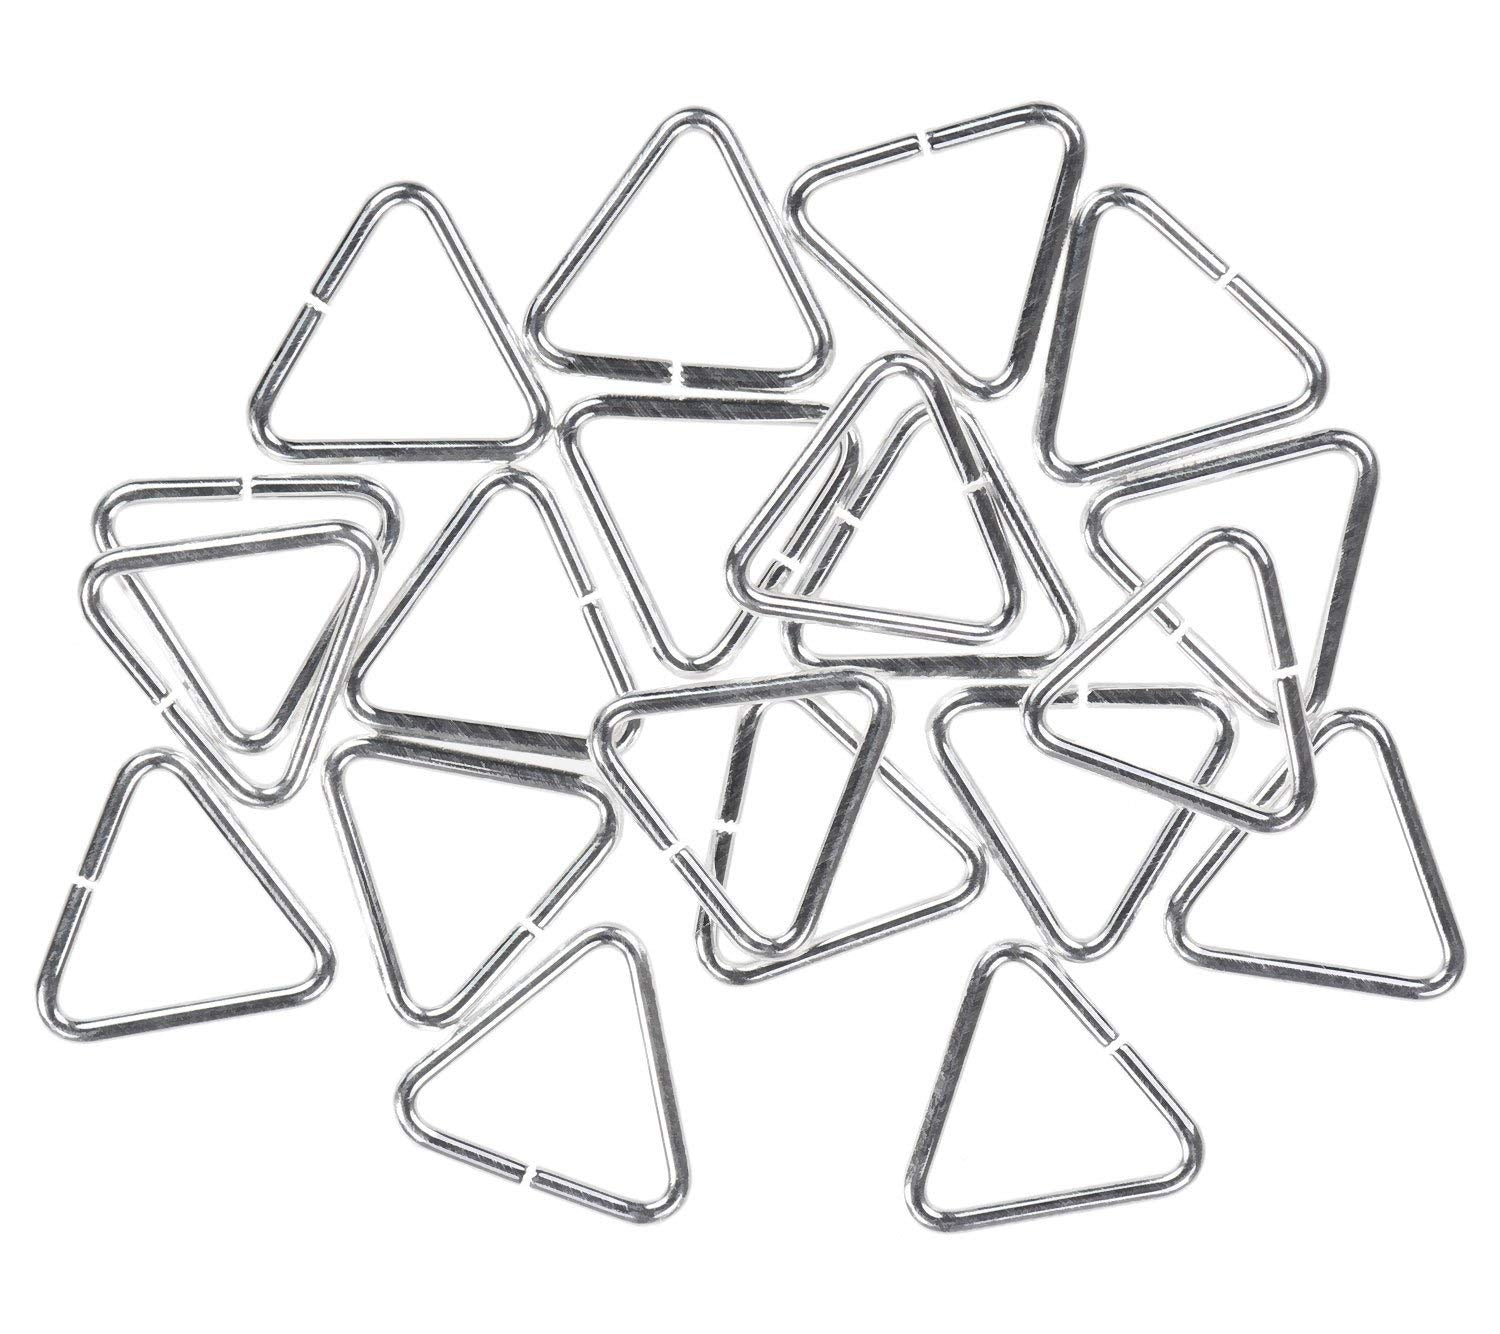 20 Sterling Silver Jump Rings Triangle 20ga 7mm Open Ring